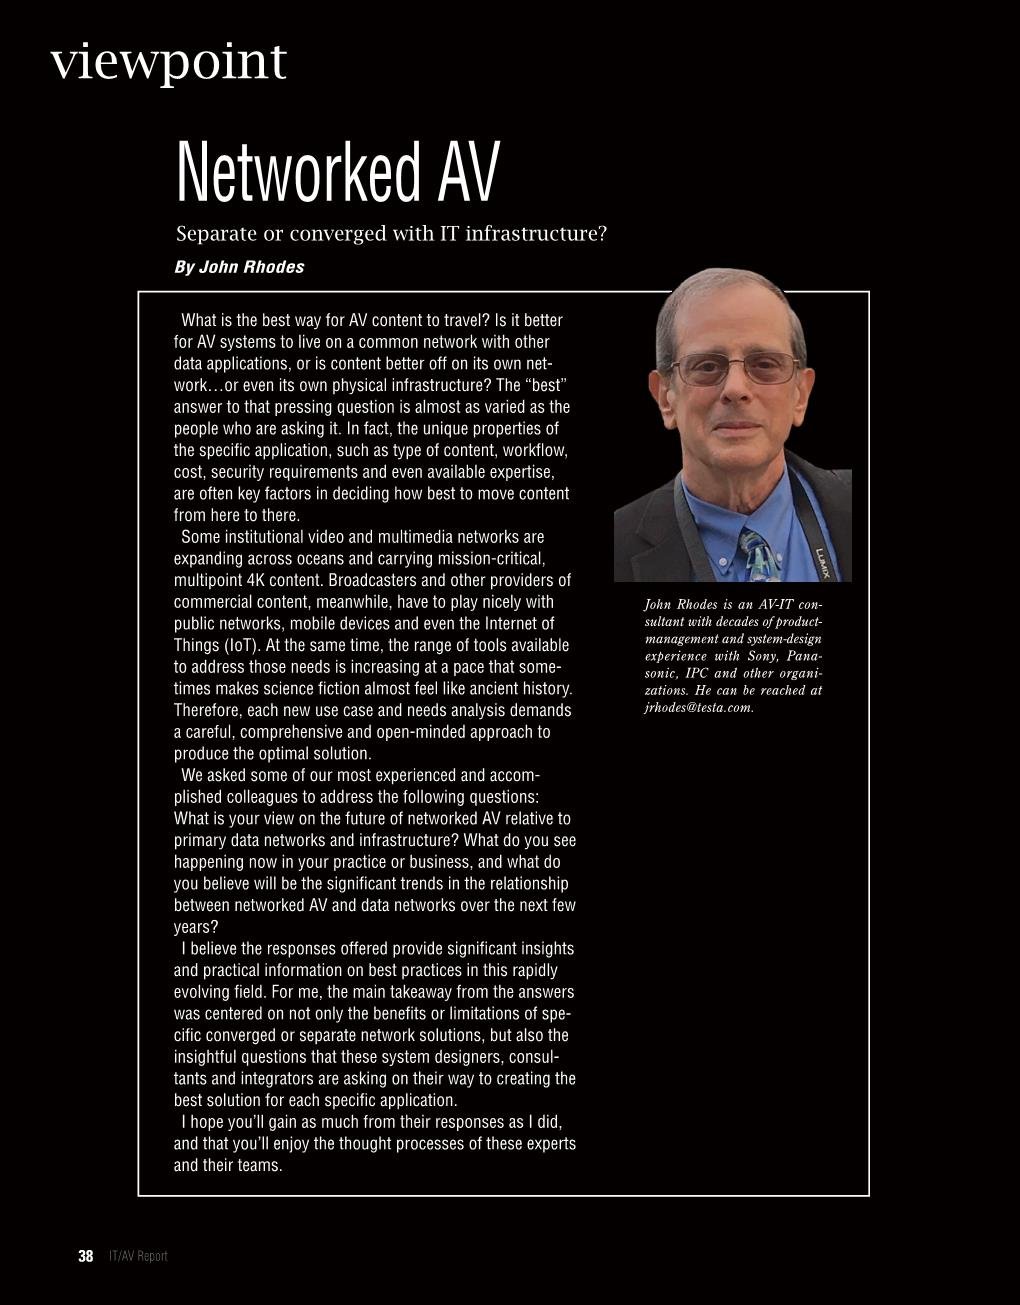 Sound Communication Brian Moores Viewpoint Page 002